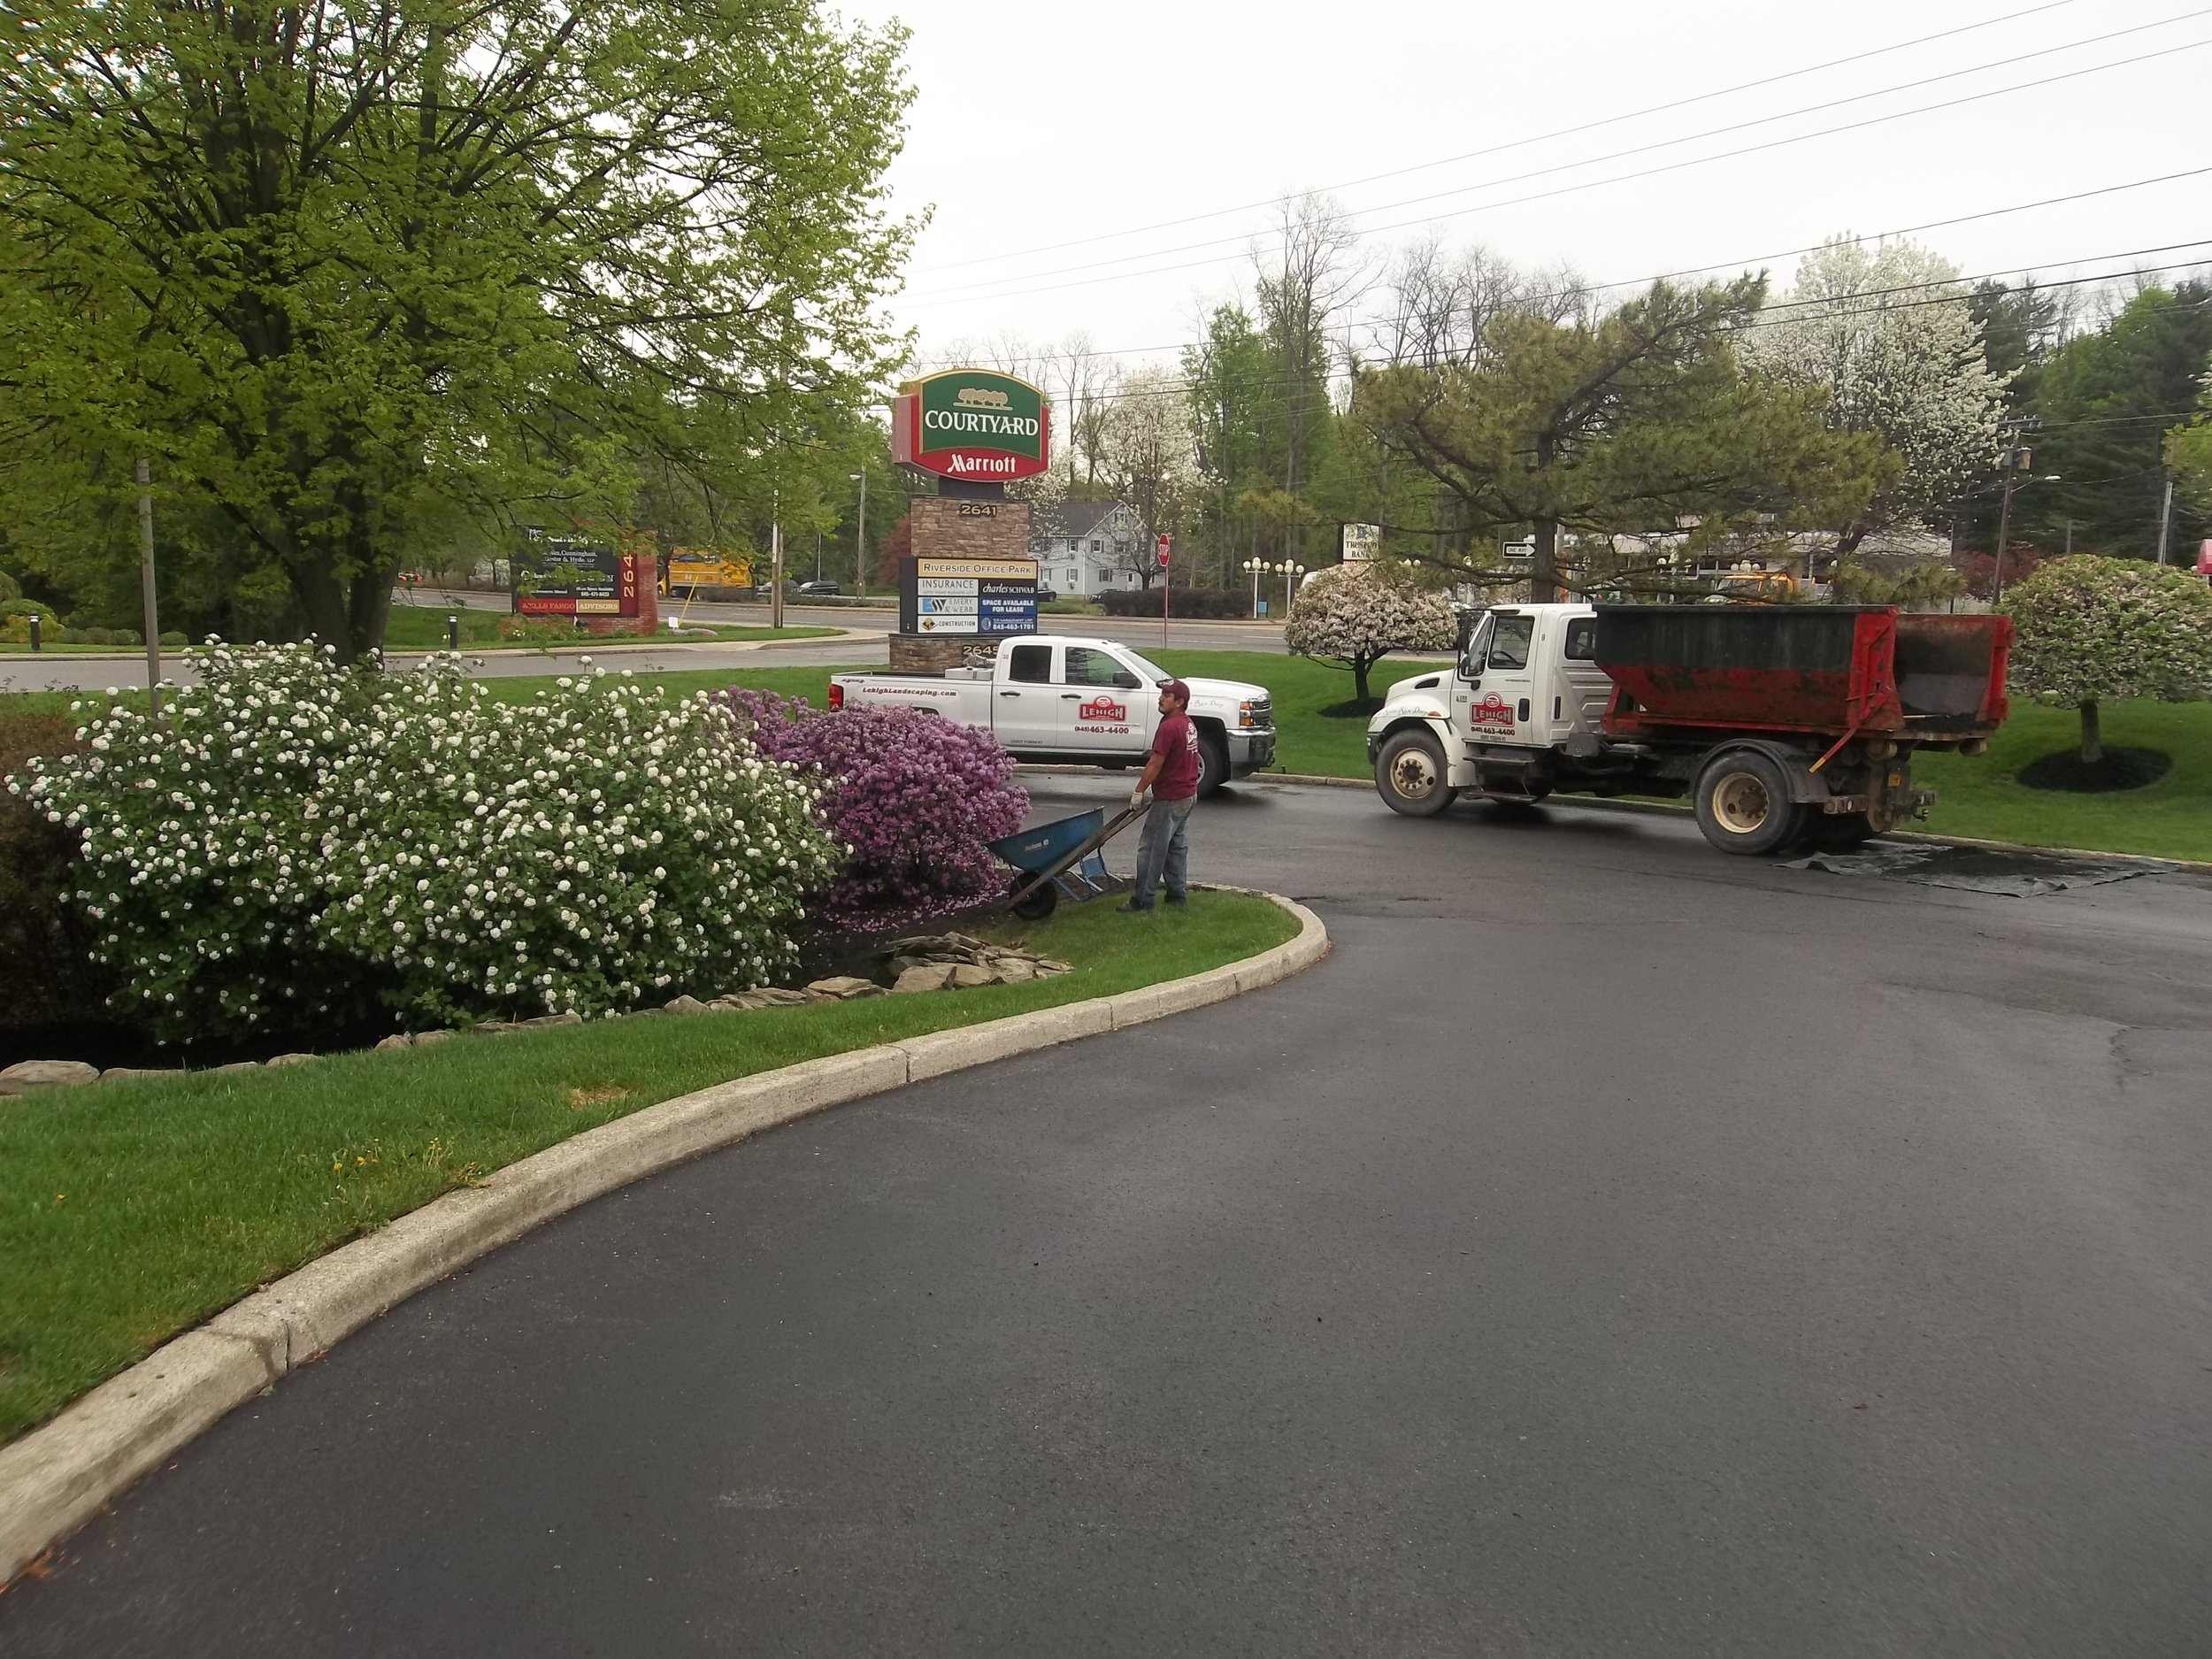 Commercial Landscaping Design Flaws That Westchester County, NY, Businesses Can Avoid by Hiring the Right Professionals